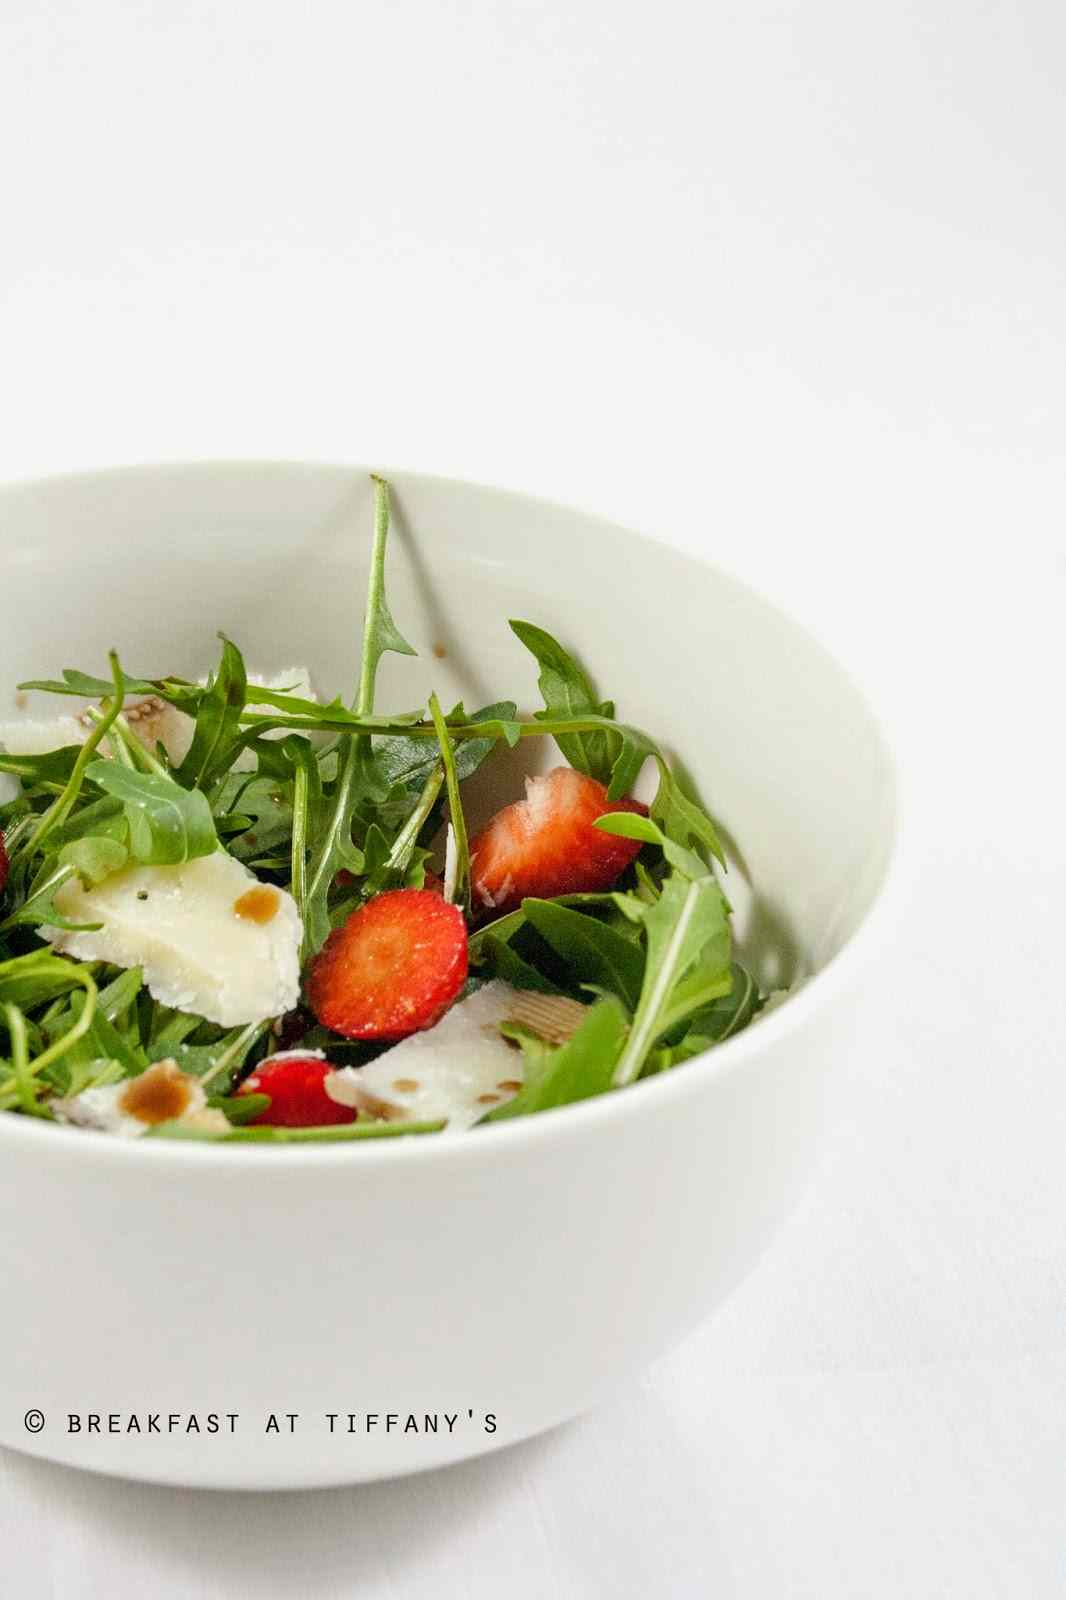 Ricetta: Insalata di fragole / strawberries salad